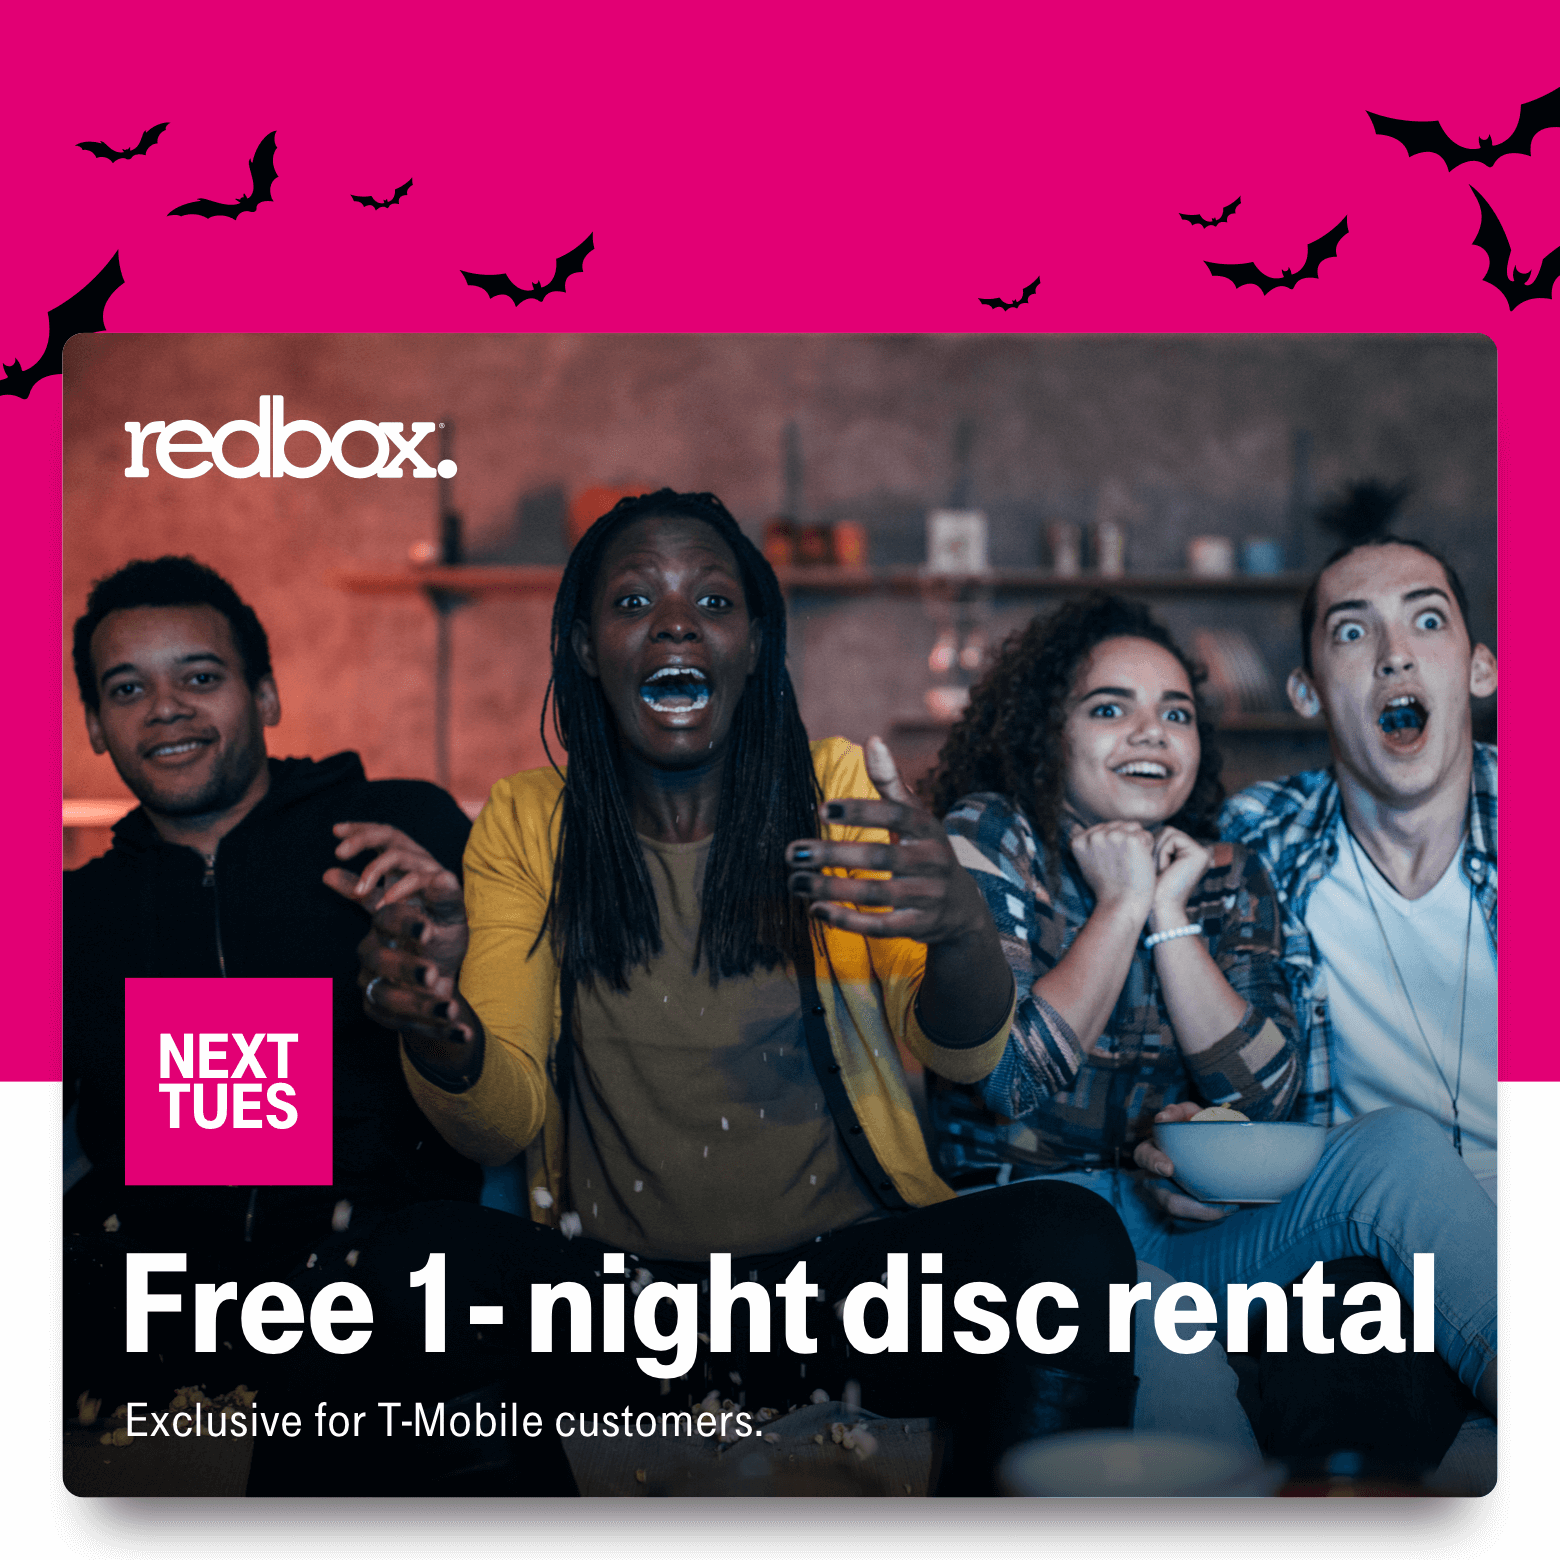 Redbox. Next Tues. Free 1-night disc rental. Exclusive for T-Mobile customers.